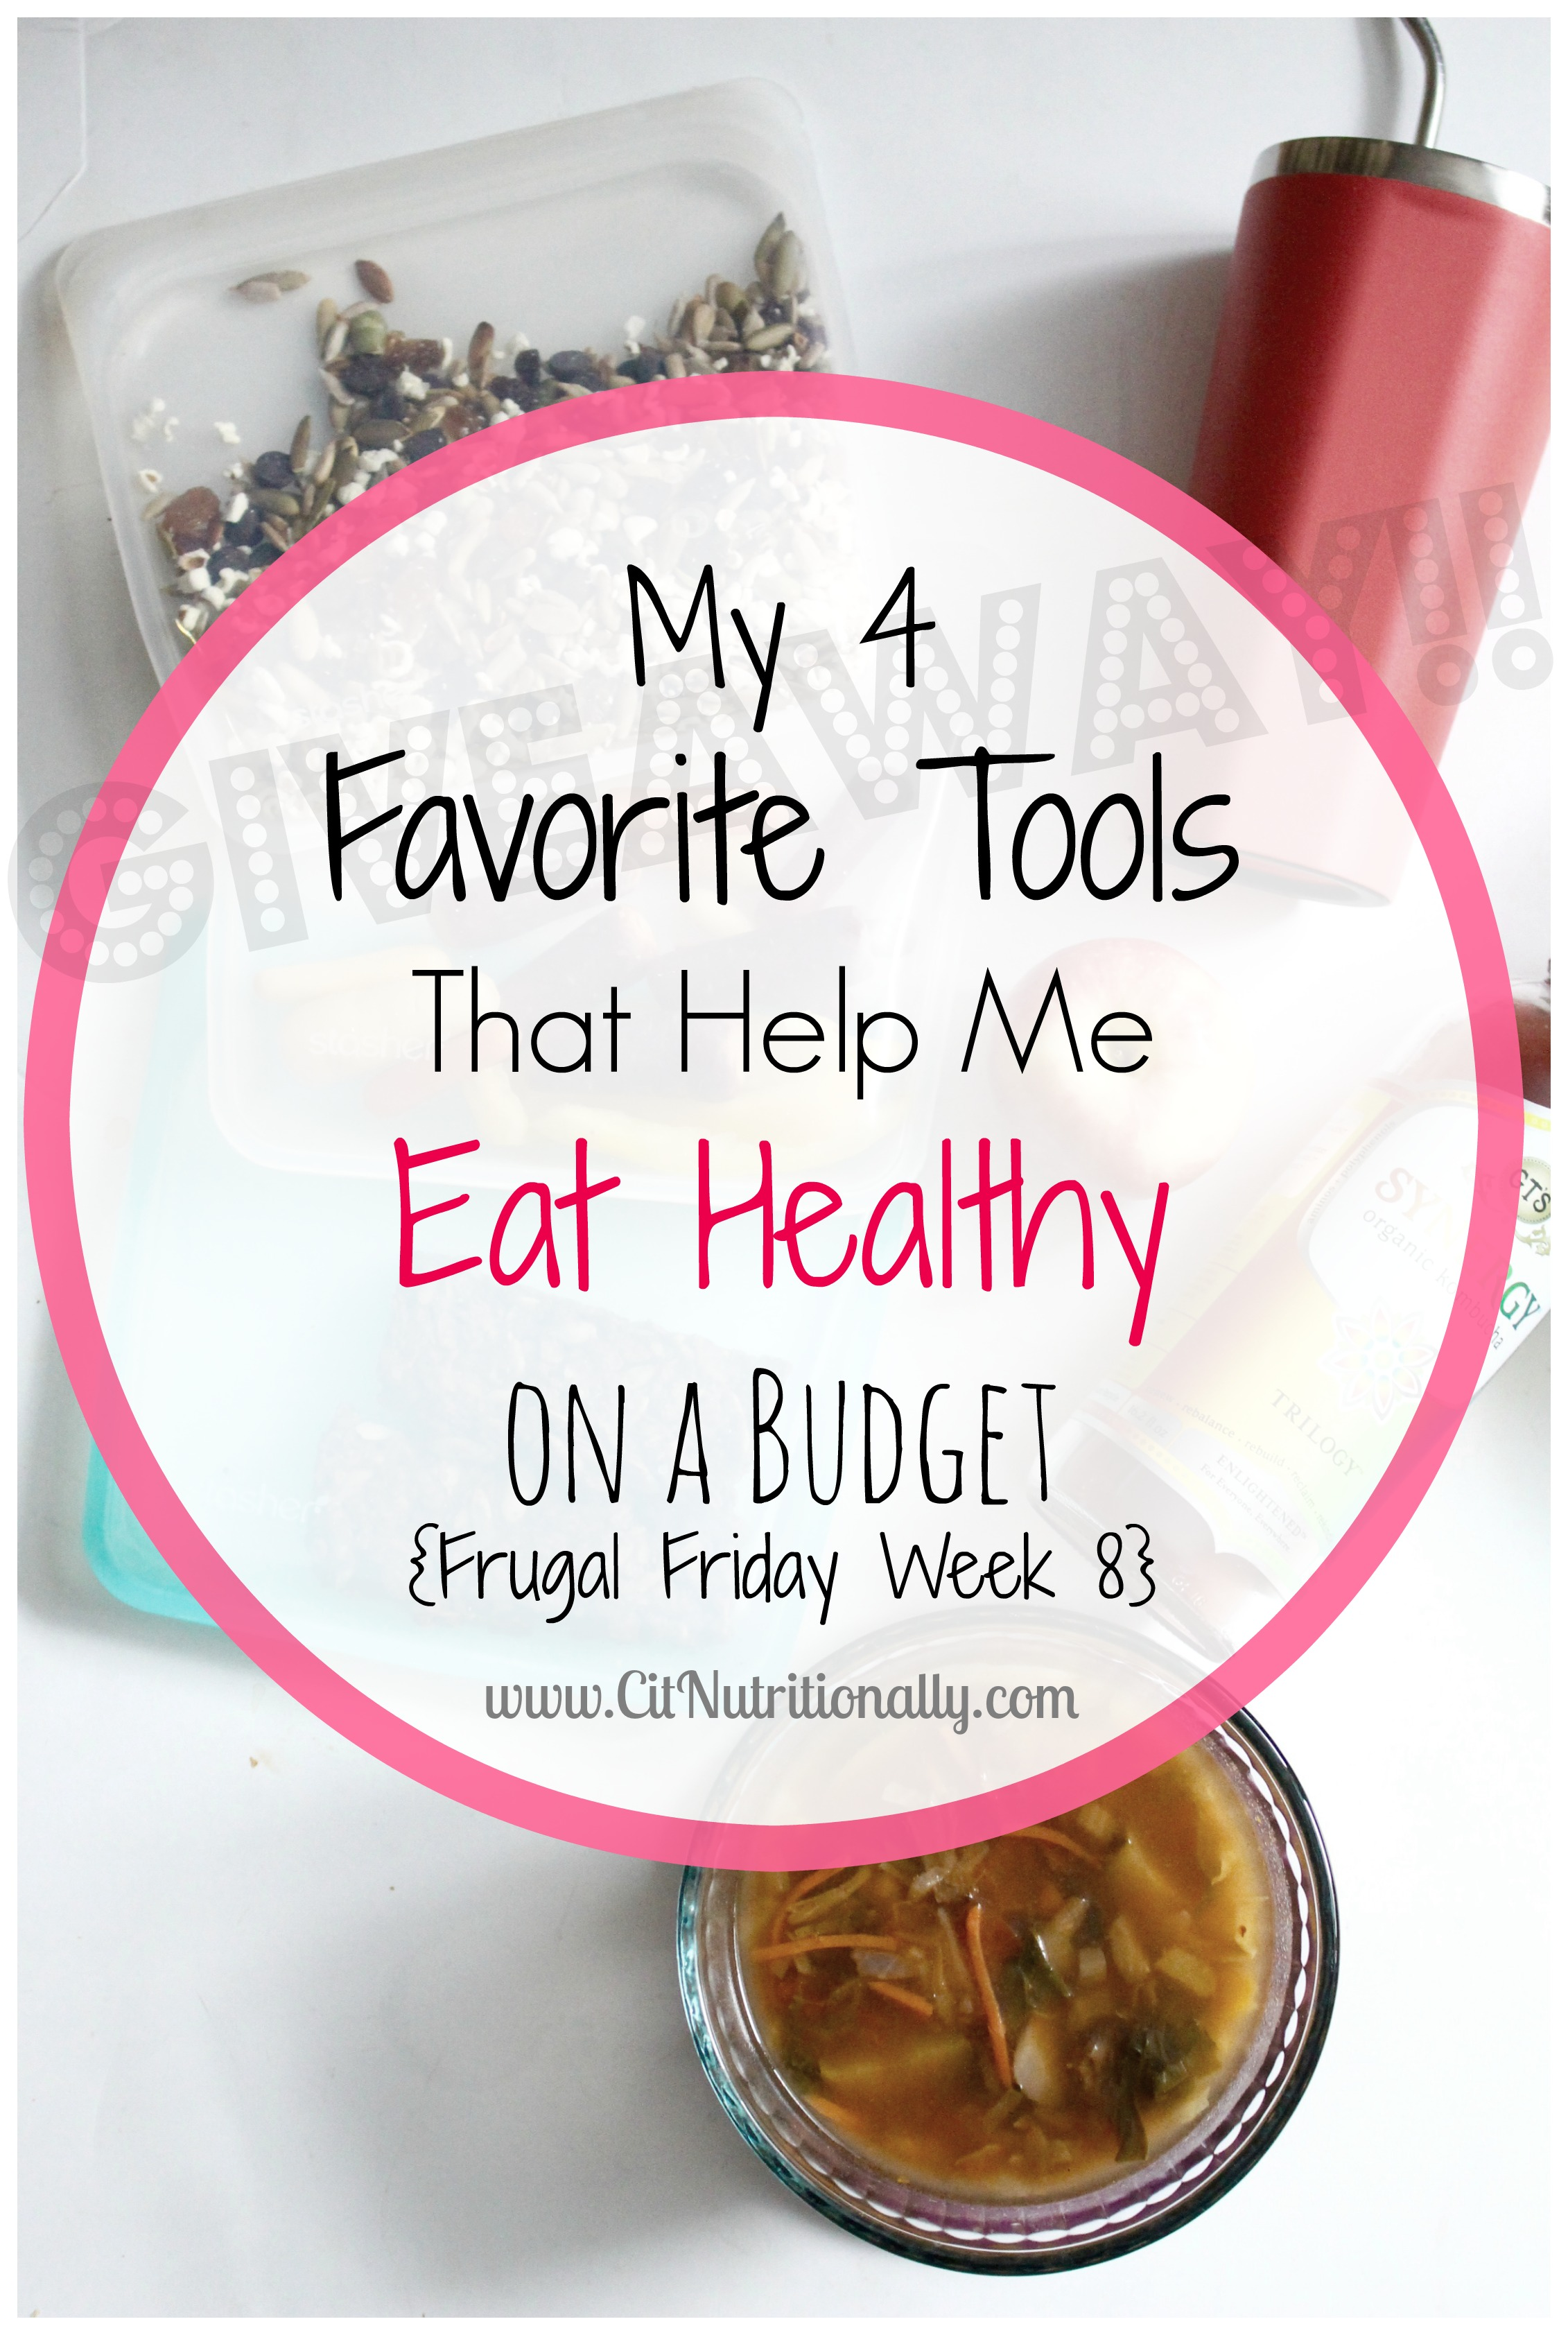 My 4 Favorite Tools That Help Me Eat Healthy on a Budget {Frugal Friday Week 8} + GIVEAWAY! | C it Nutritionally